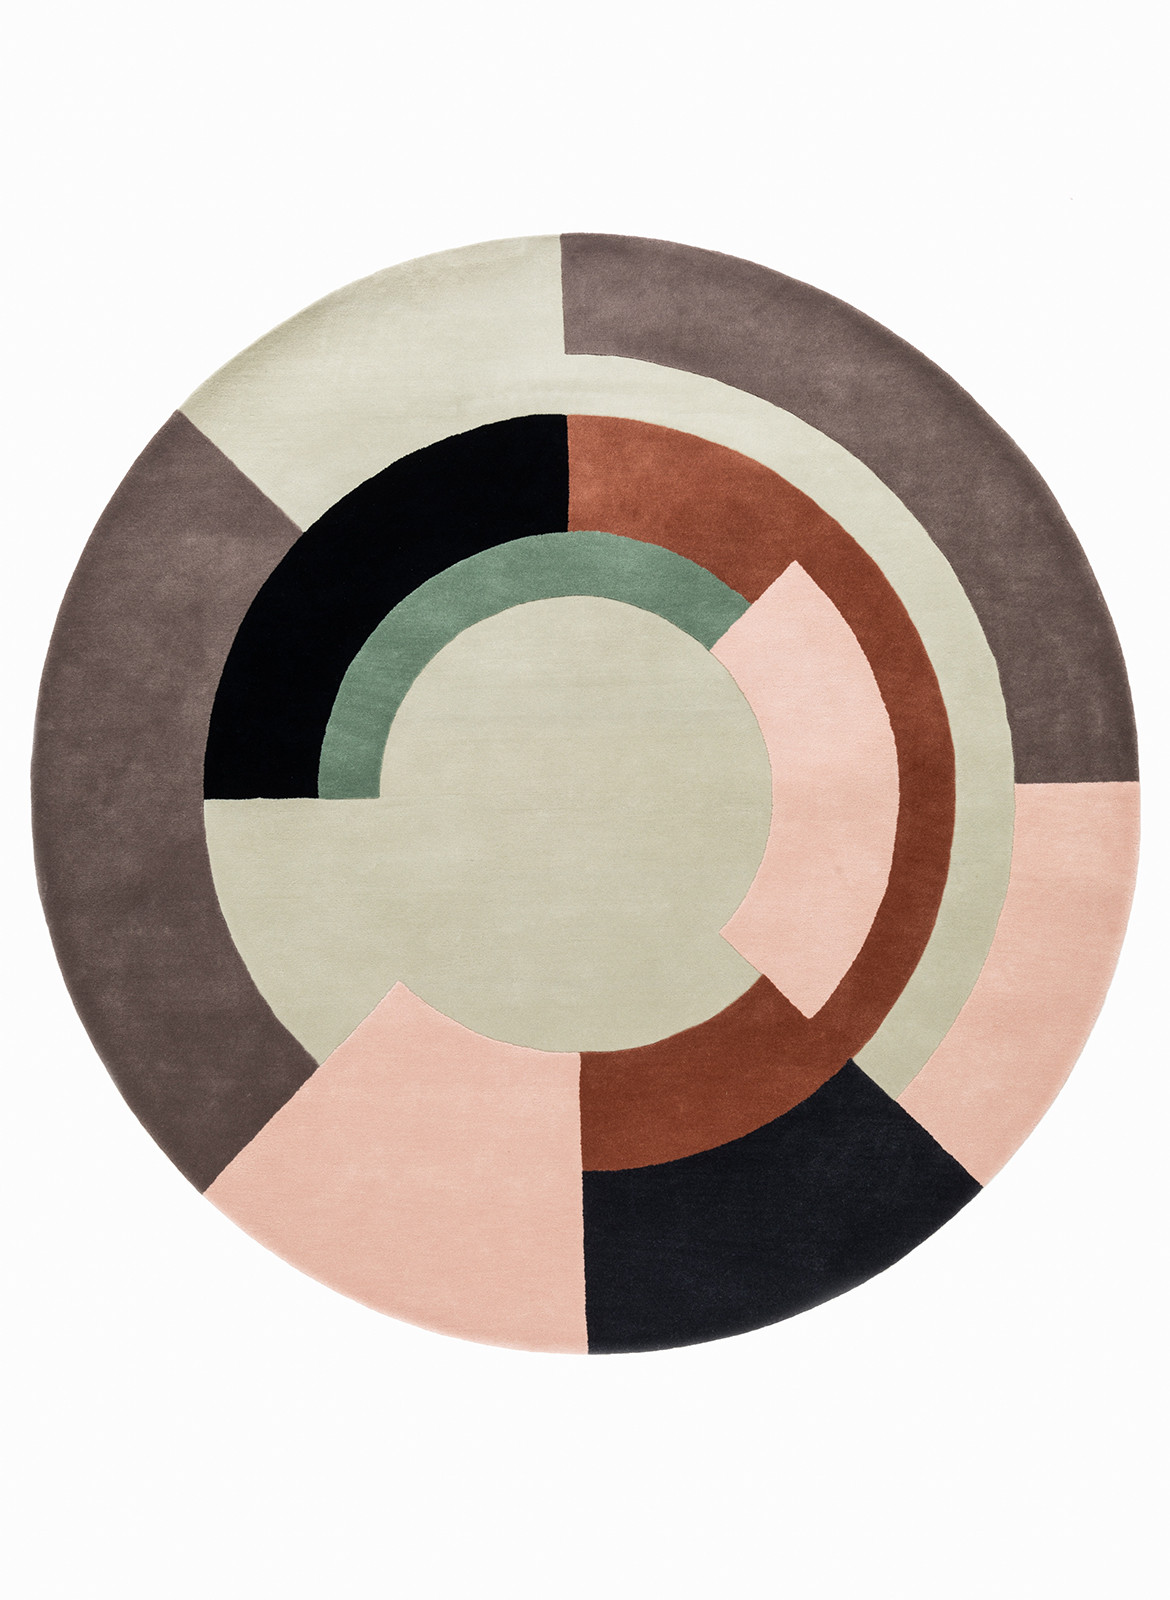 Designer Rugs Bernabeifreeman CC Richard Whitman plateau colours